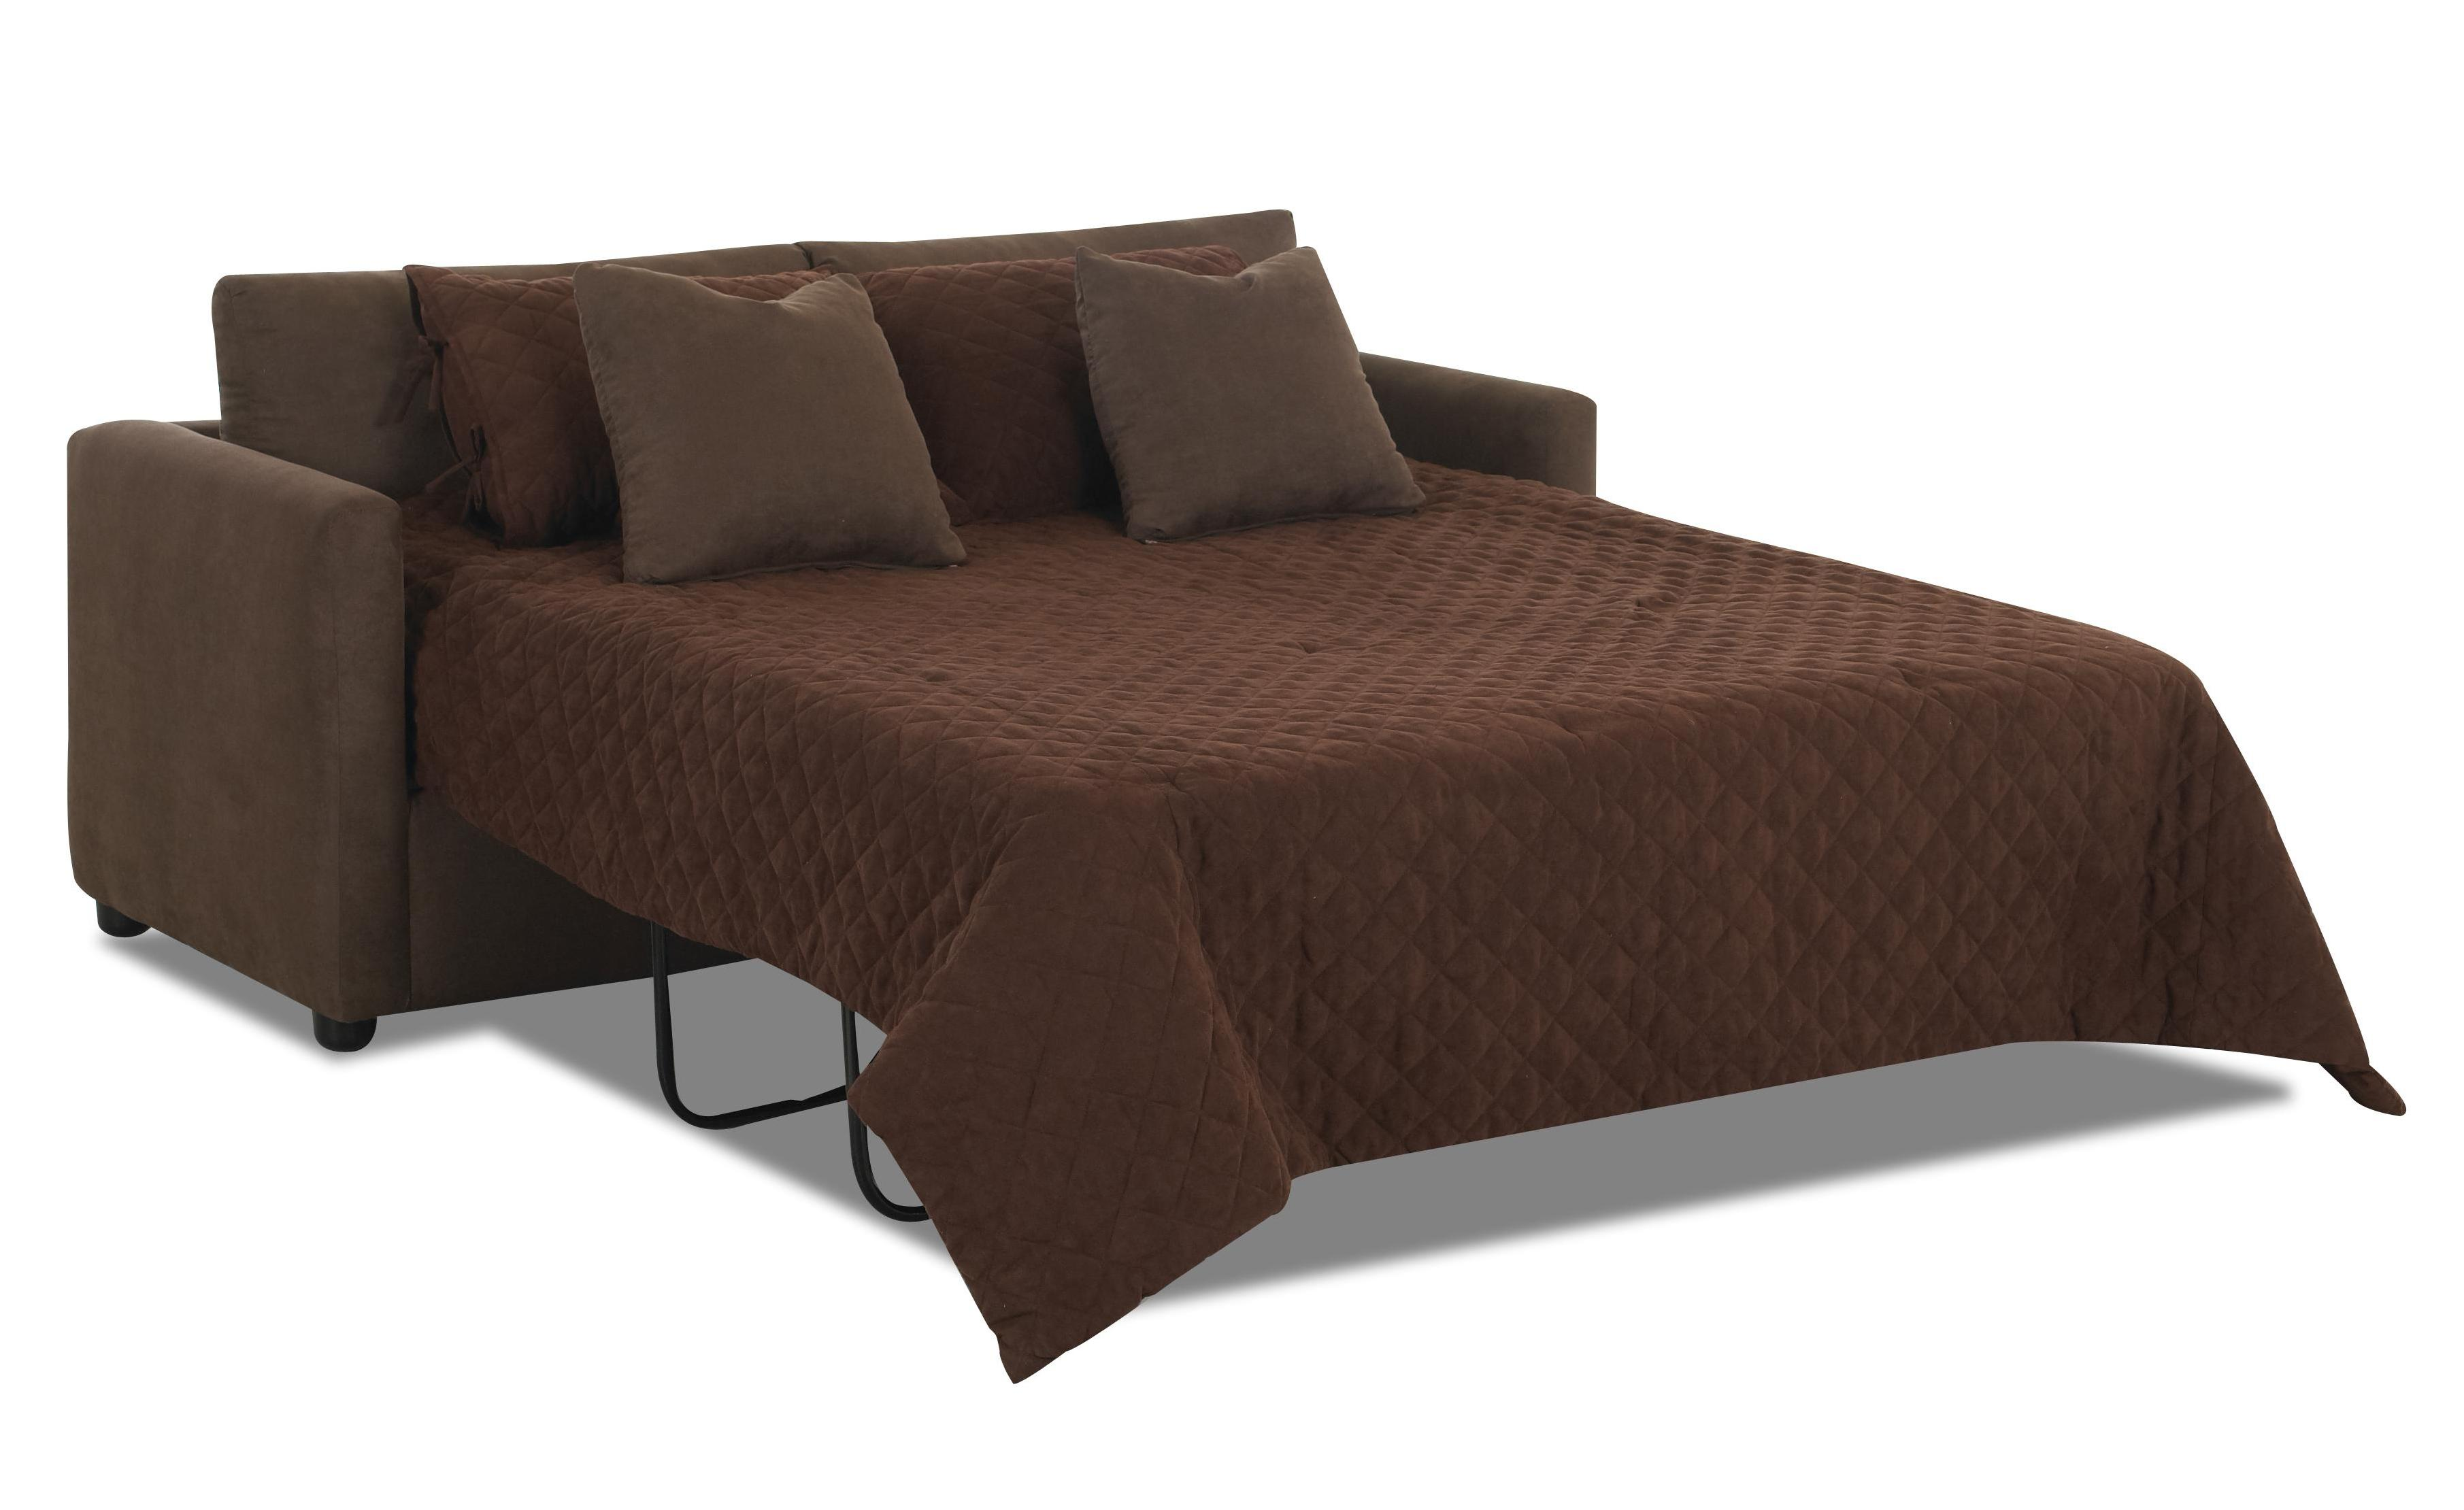 gr products com leather out sofa sofamania bonded sleeper marcel couch pull bed